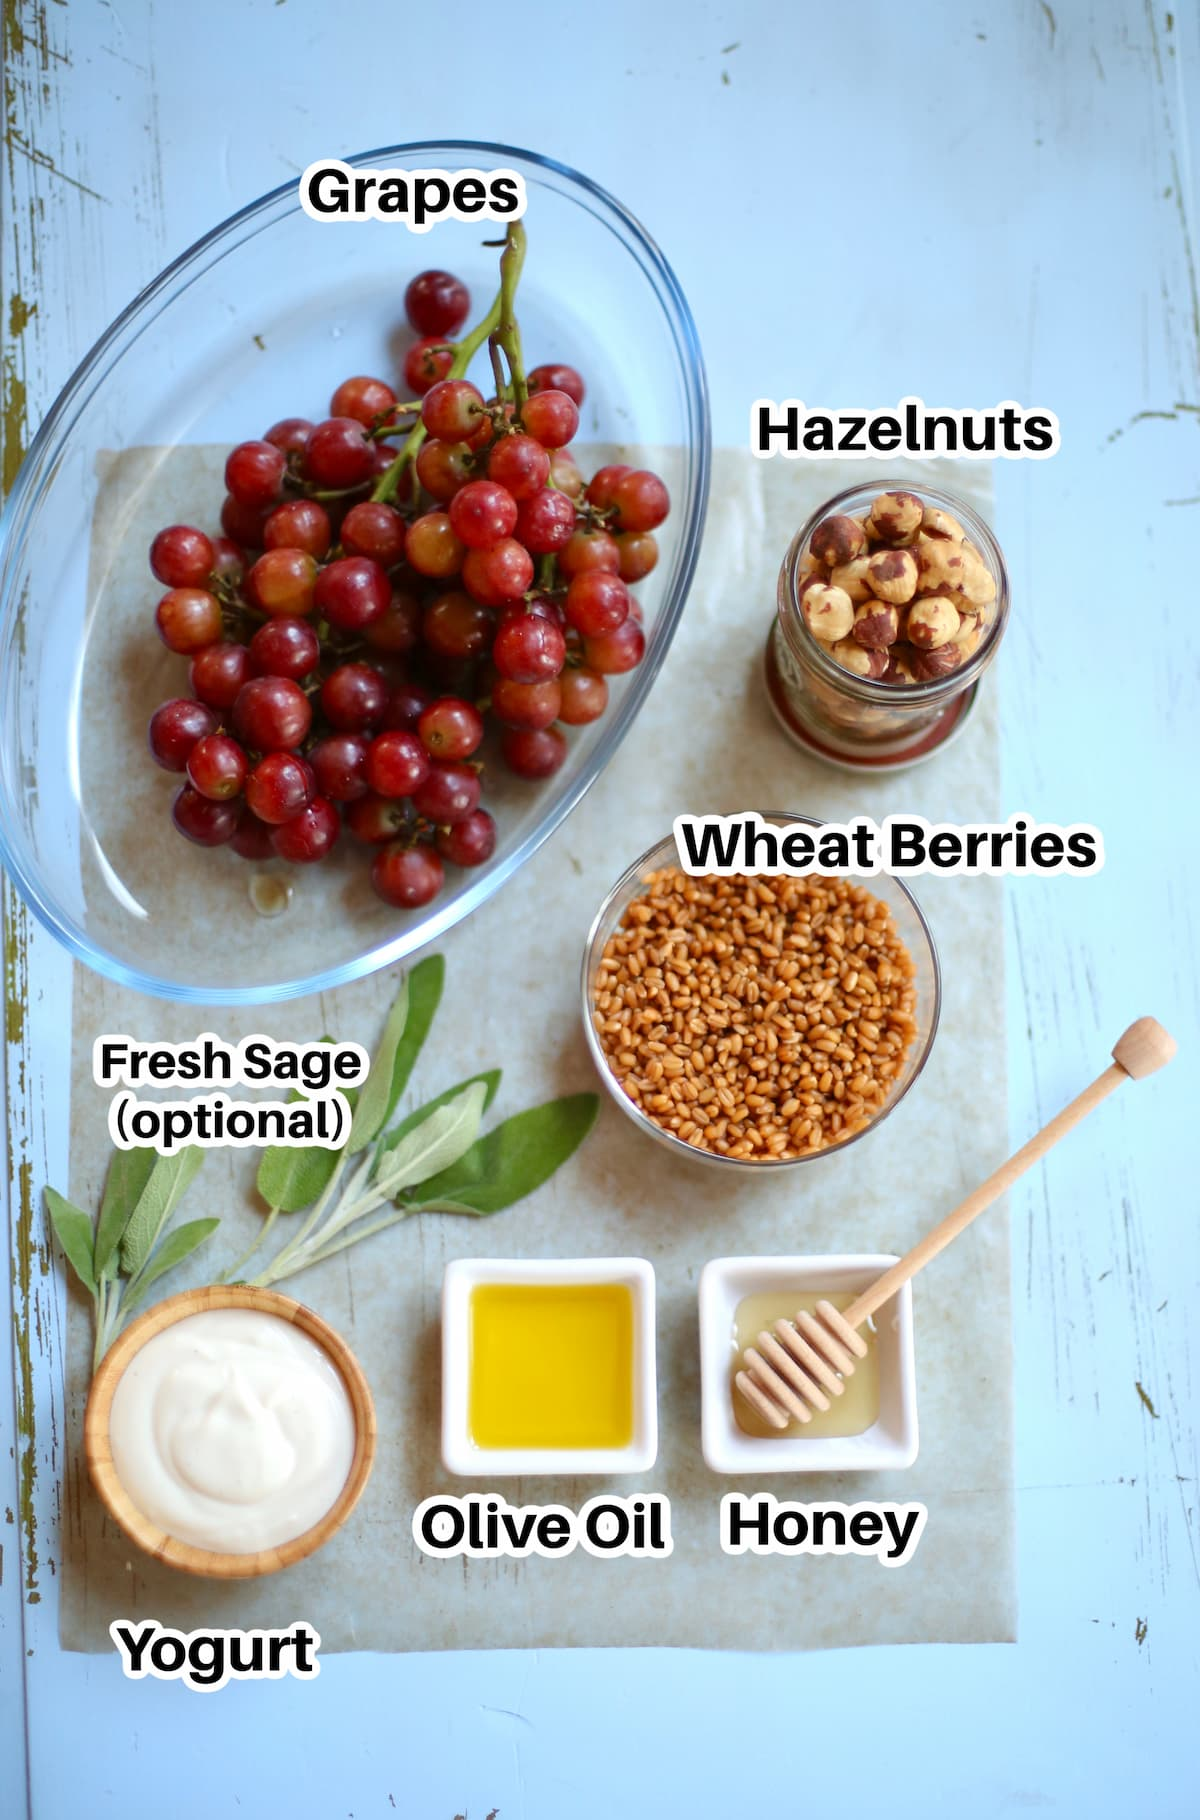 grapes, wheat berries, honey, olive oil and yogurt and hazelnuts on a blue table